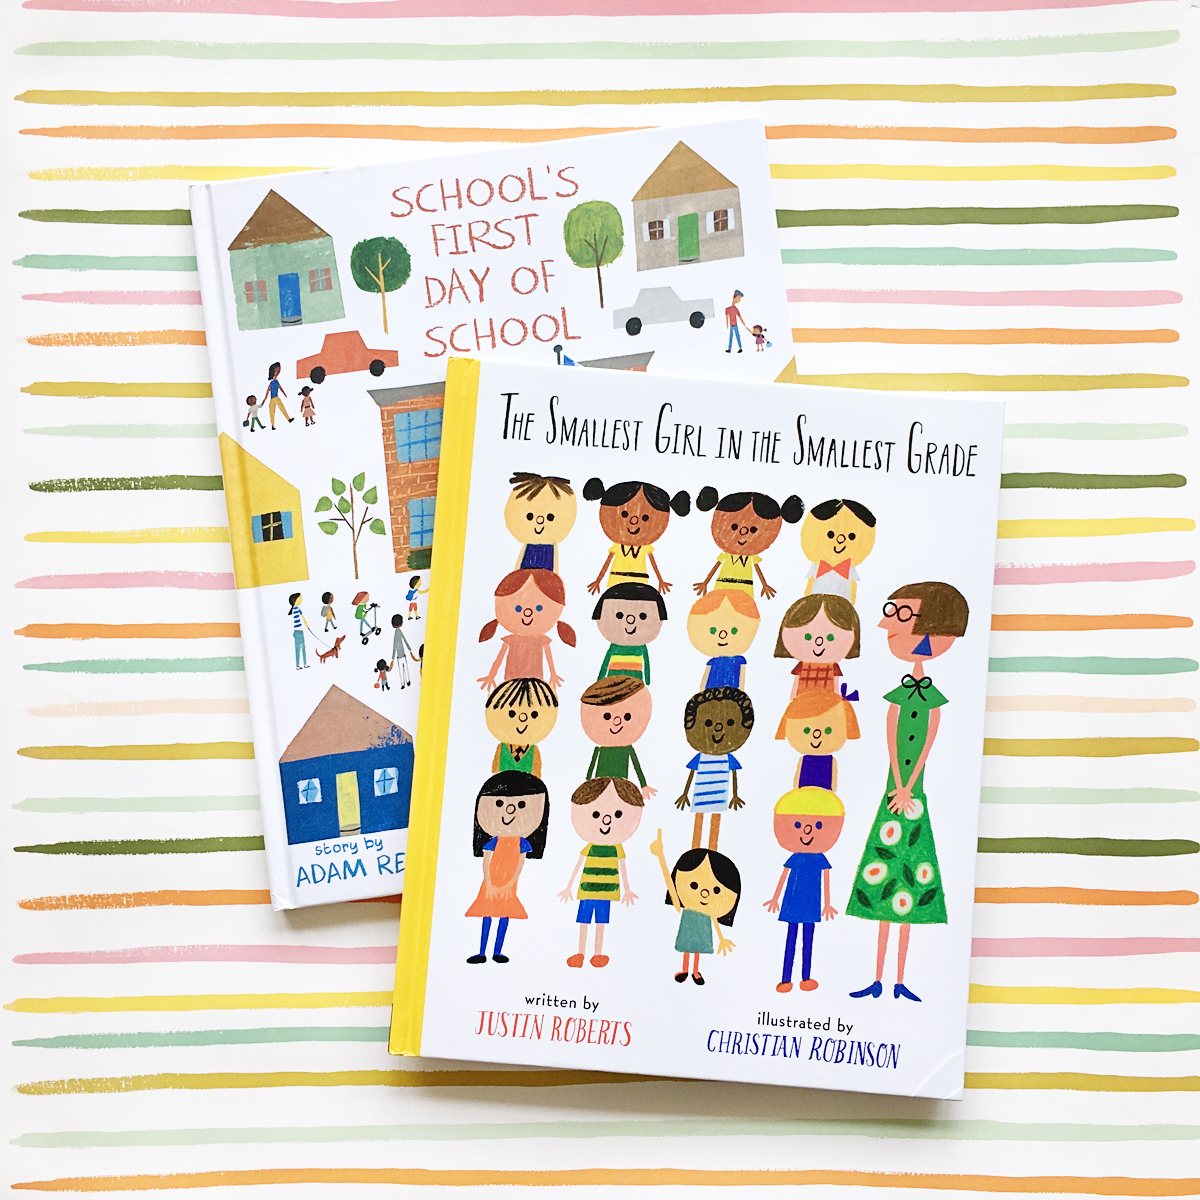 School's First Day of School and The Smallest Girl in the Smallest Grade | Books For Diversity